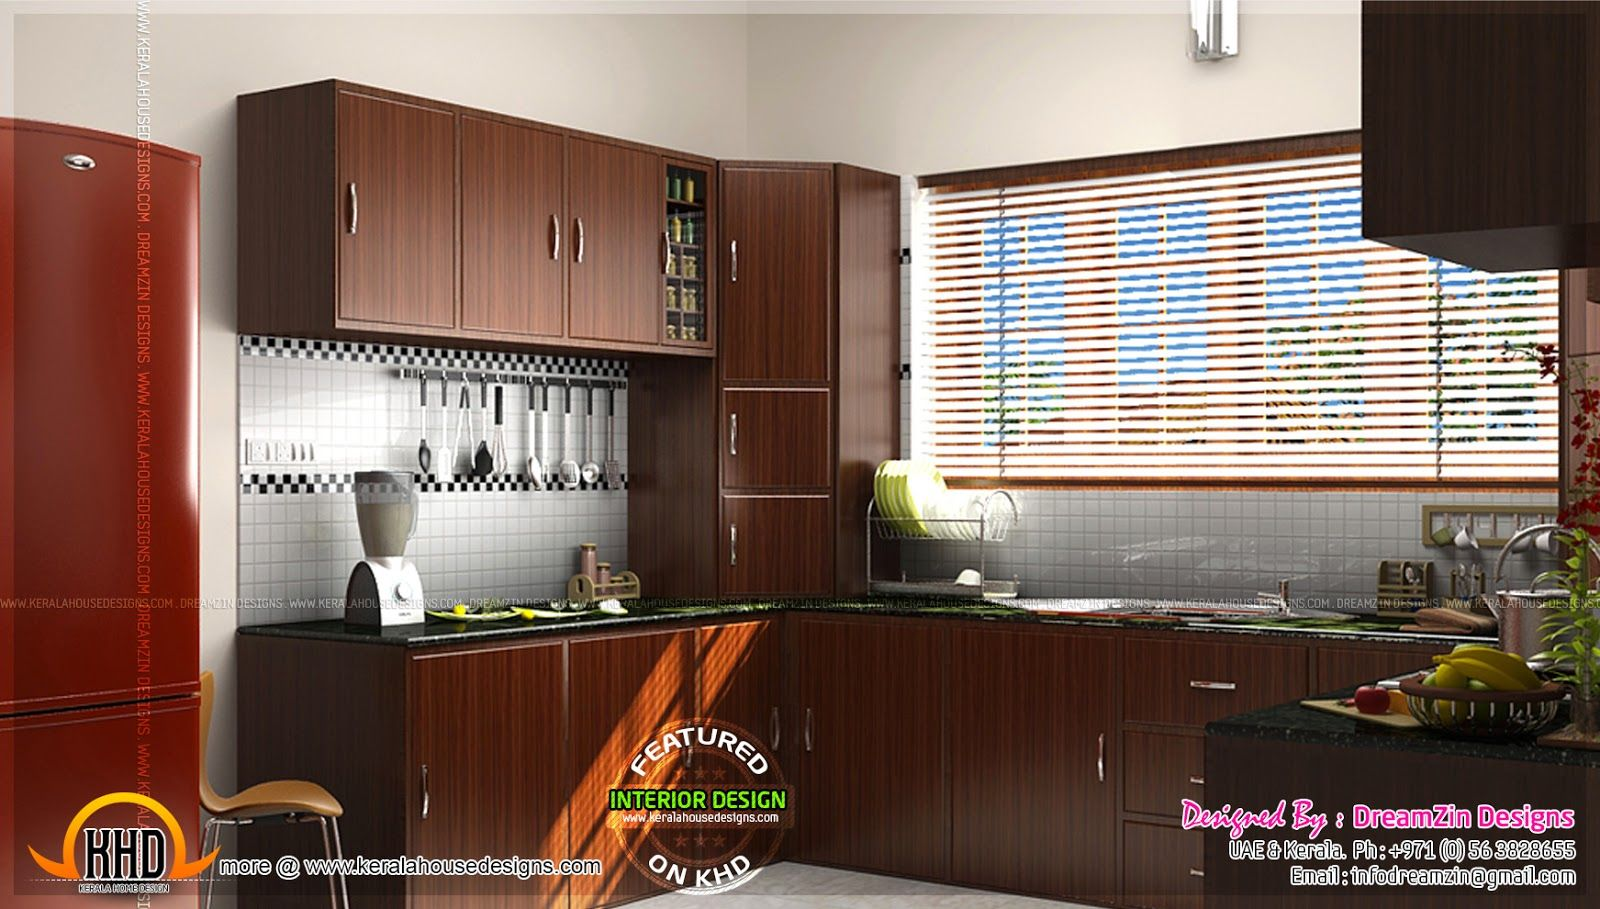 Kerala kitchen interior design modular kitchen kerala for Kerala home interior